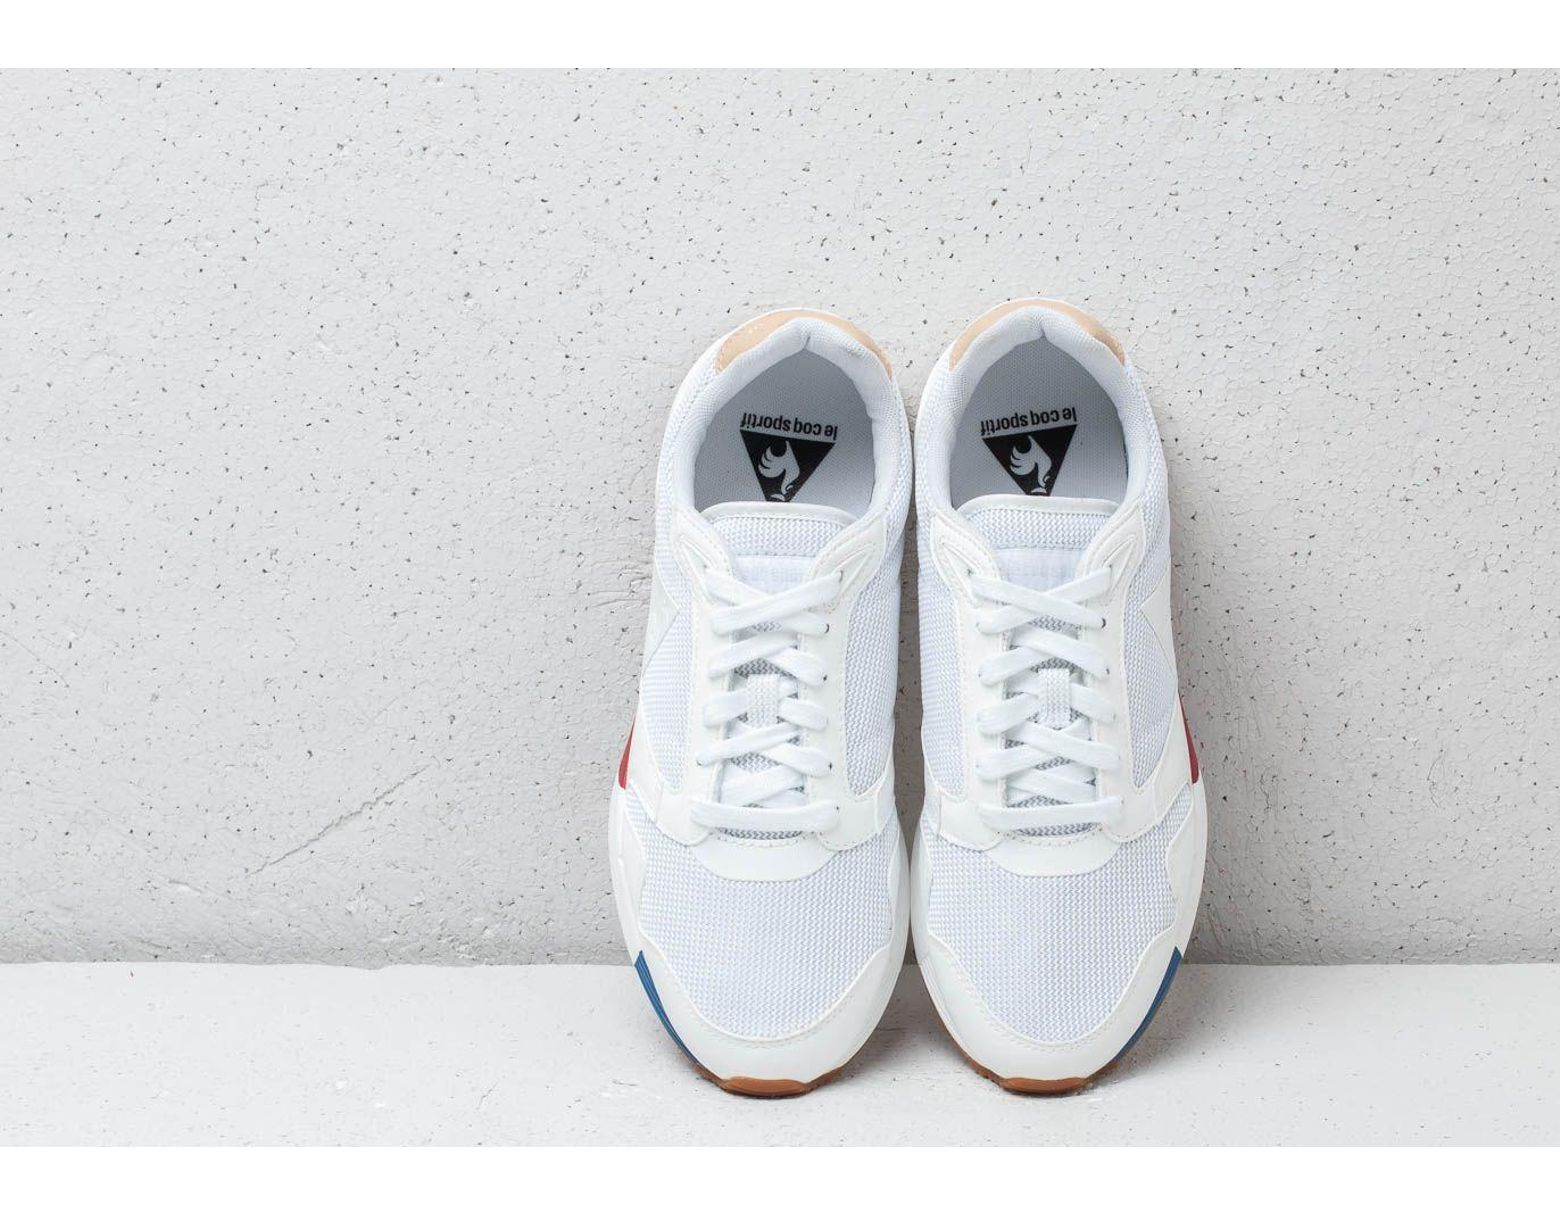 bfef033c Le Coq Sportif Omega X Sport Optical White in White for Men - Save 29% -  Lyst